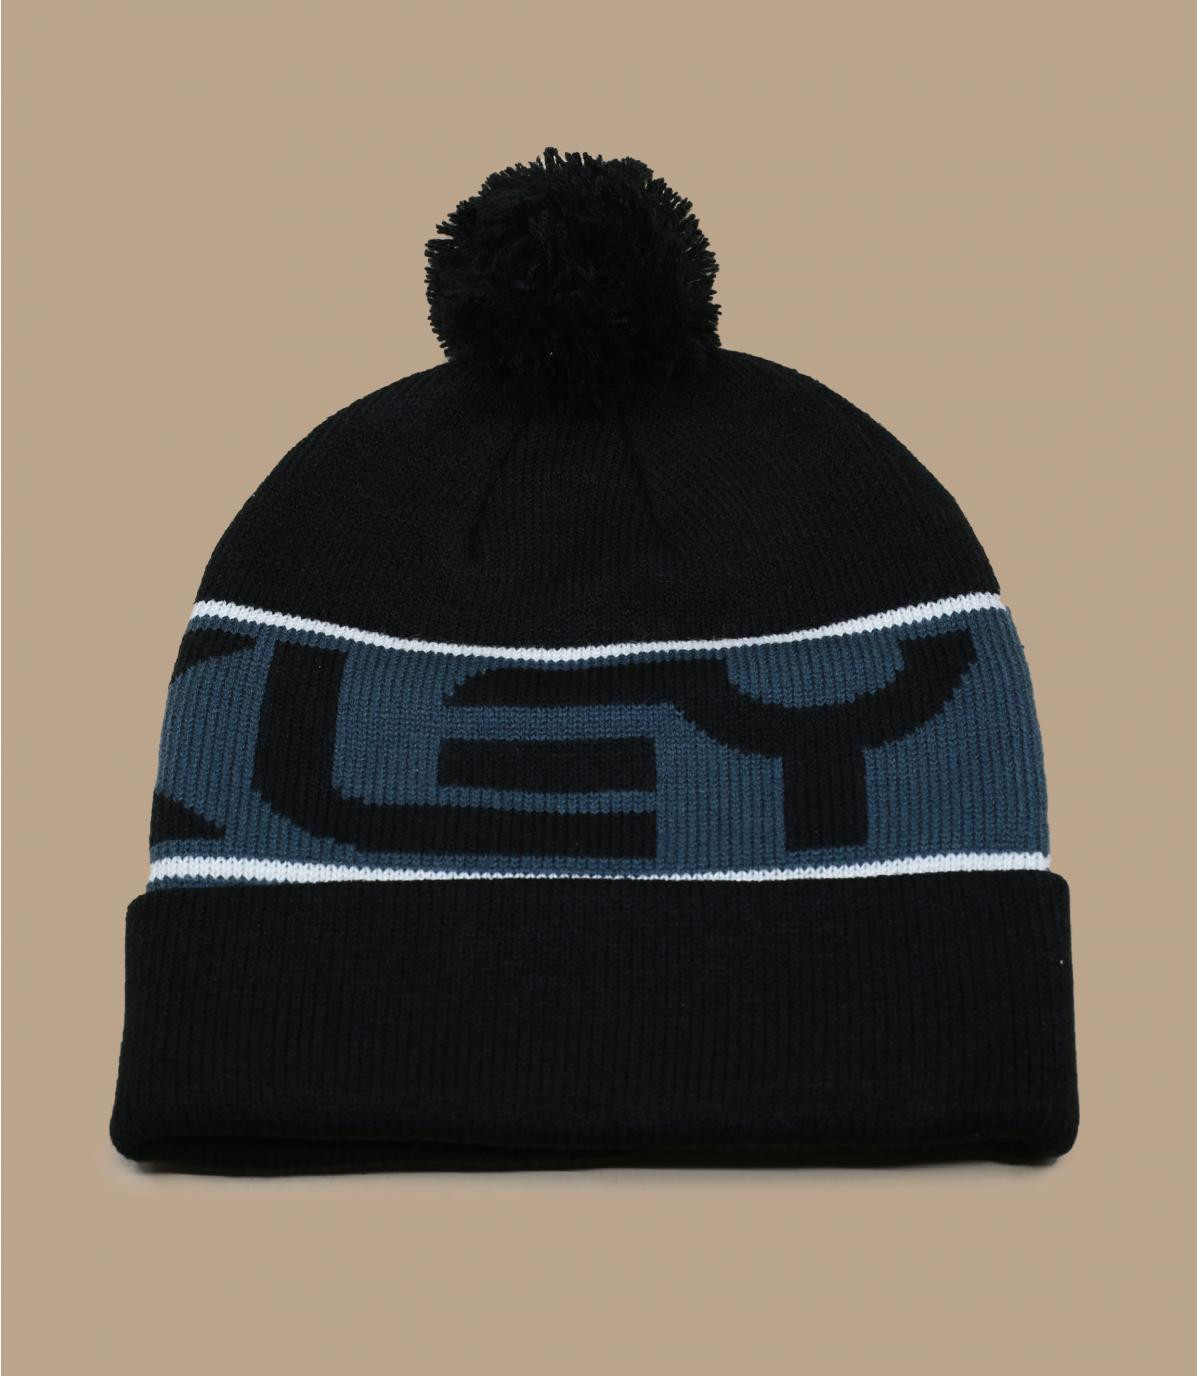 Details Factory Cuff Beanie blackout - afbeeling 2